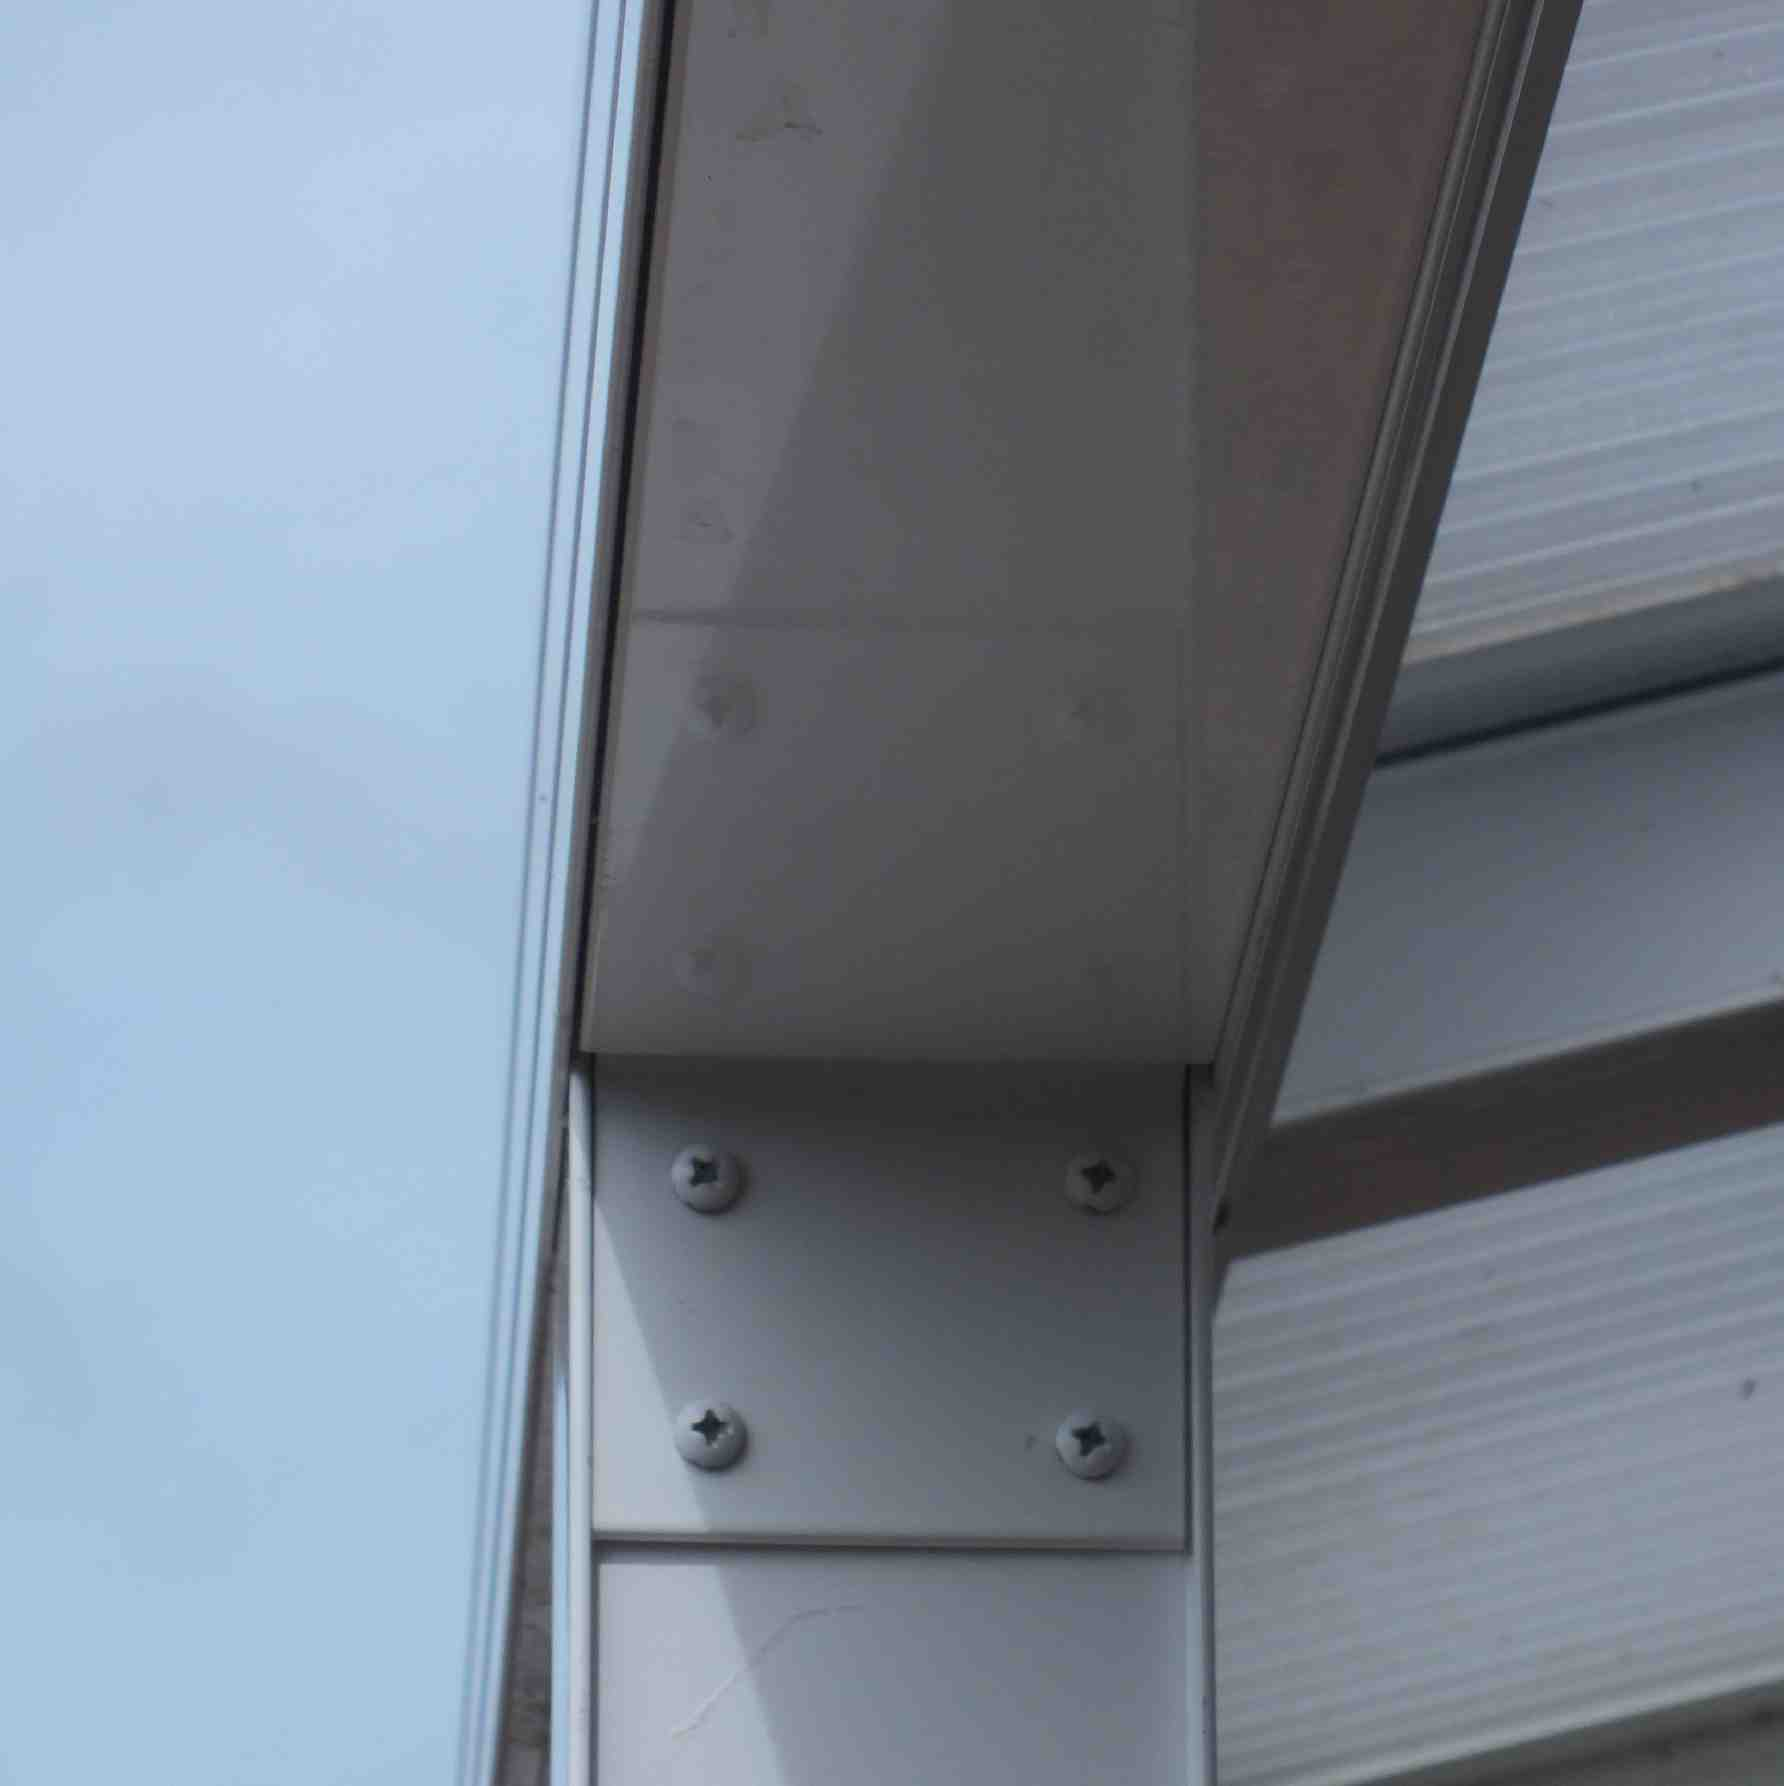 Affordable Omega Verandah with 16mm Polycarbonate Glazing - 5.6m (W) x 4.0m (P), (3) Supporting Posts